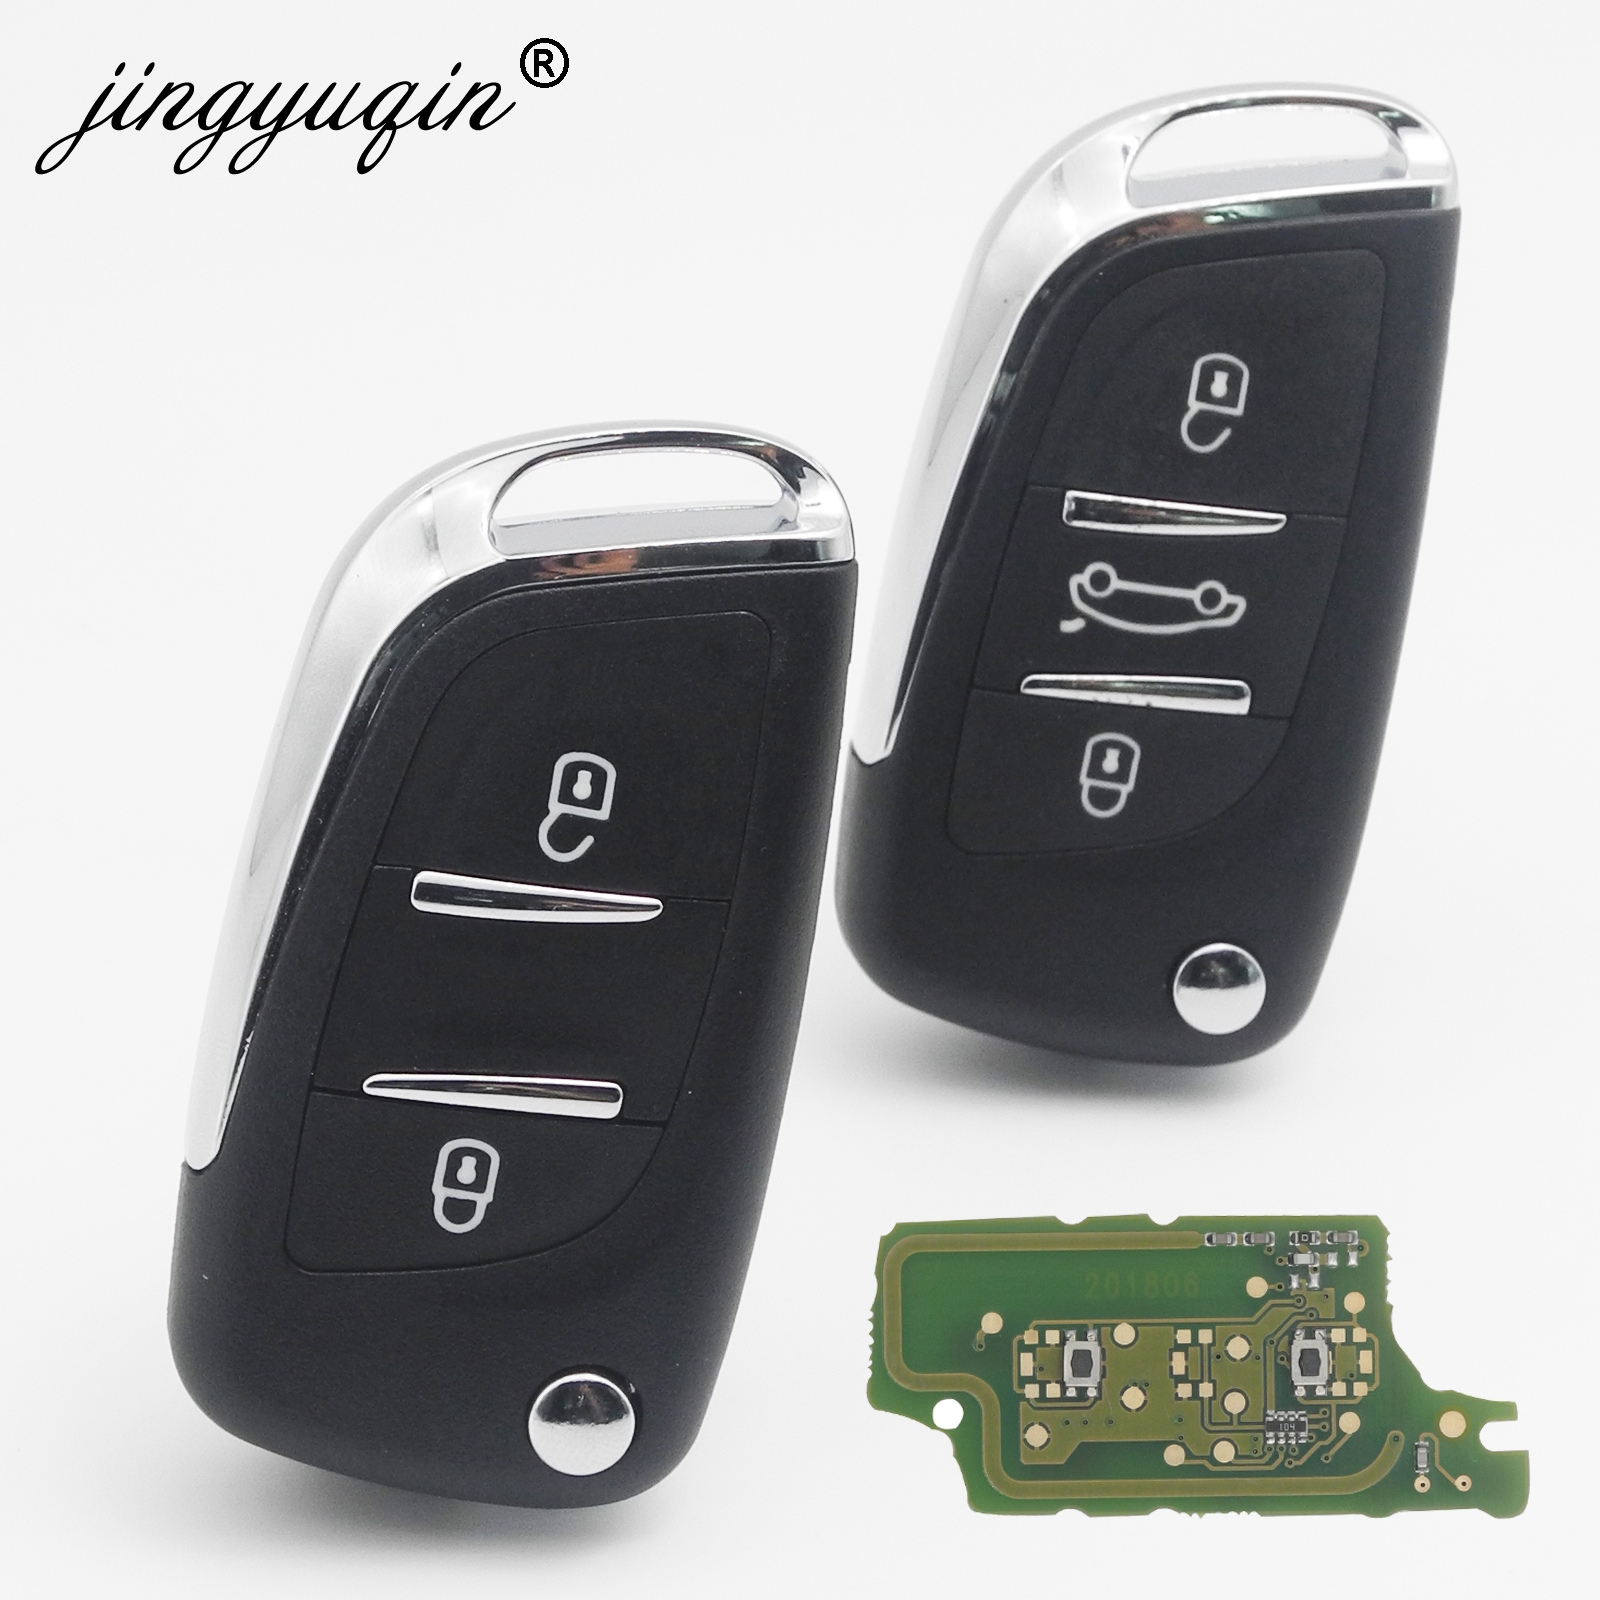 jingyuqin 433MHz ASK/FSK Modified Flip Remote Car Key for Citroen PICASSO C2 C3 C4 C5 C6 C8 CE0536 VA2/HU83 PCF7961 2/3 BTN Key-in Car Key from Automobiles & Motorcycles